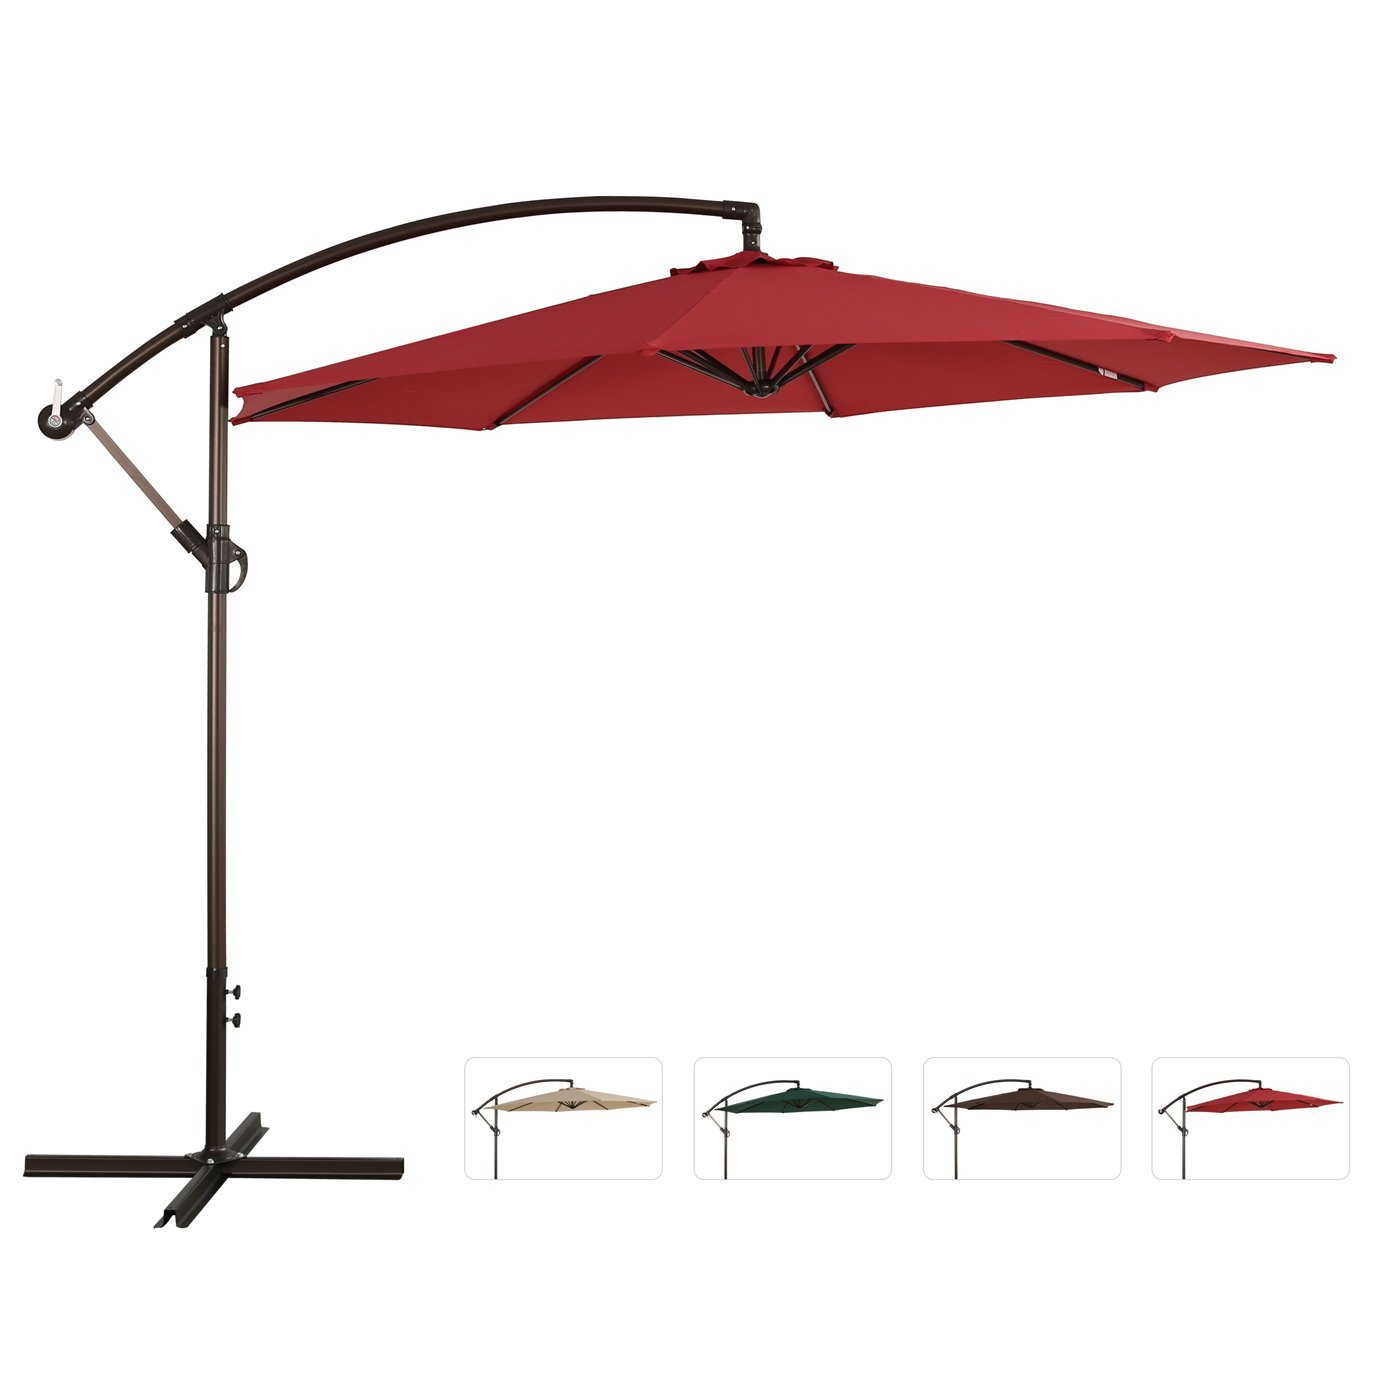 Garden Treasures Pergola Canopy | Garden Treasures Offset Umbrella | Lowes Patio Umbrellas